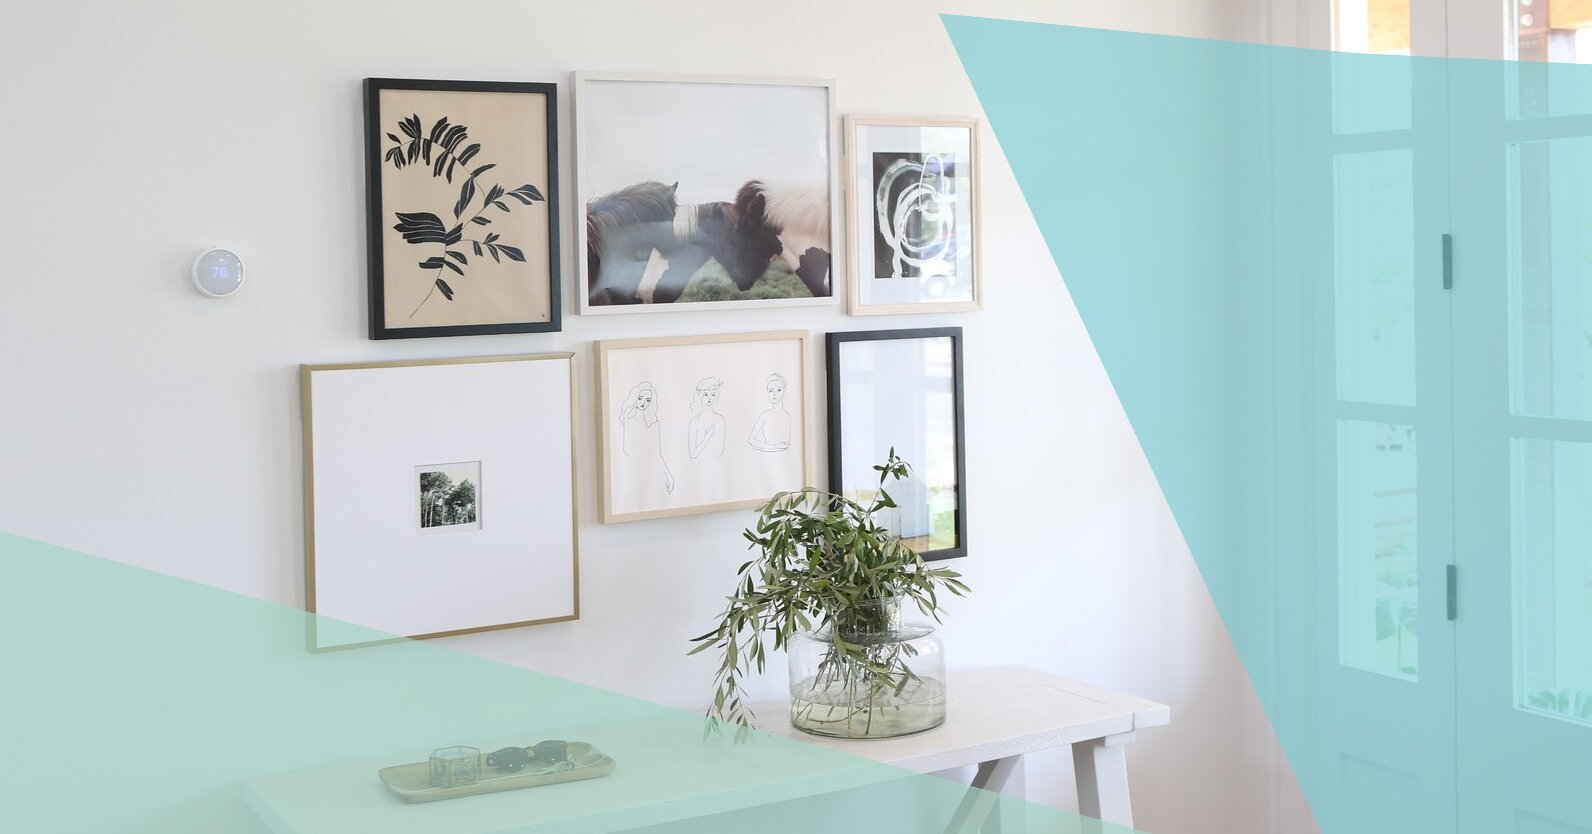 The Best Places to Buy Affordable Art Online